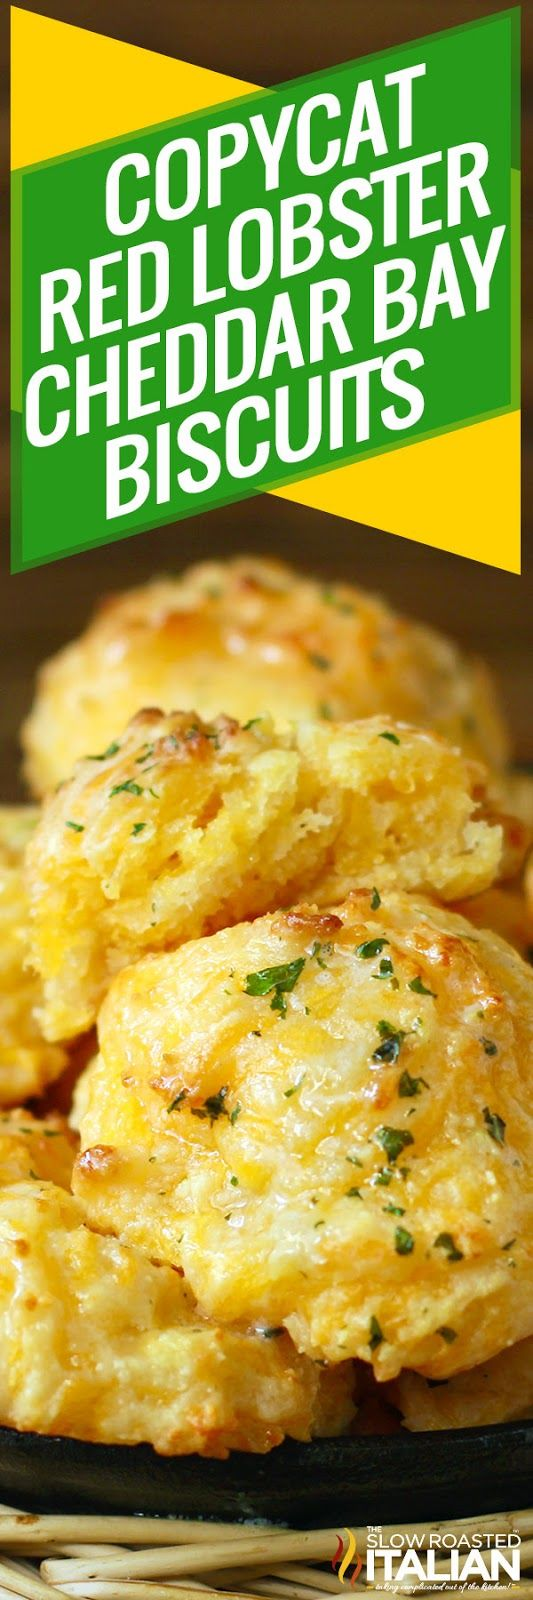 Copycat Red Lobster Cheddar Bay Biscuits are easier AND tastier than a box mix!  This recipe is so easy, it only takes one bowl, one whisk, no baking mix and 20 minutes!  Yes, only 20 minutes from start till serve.